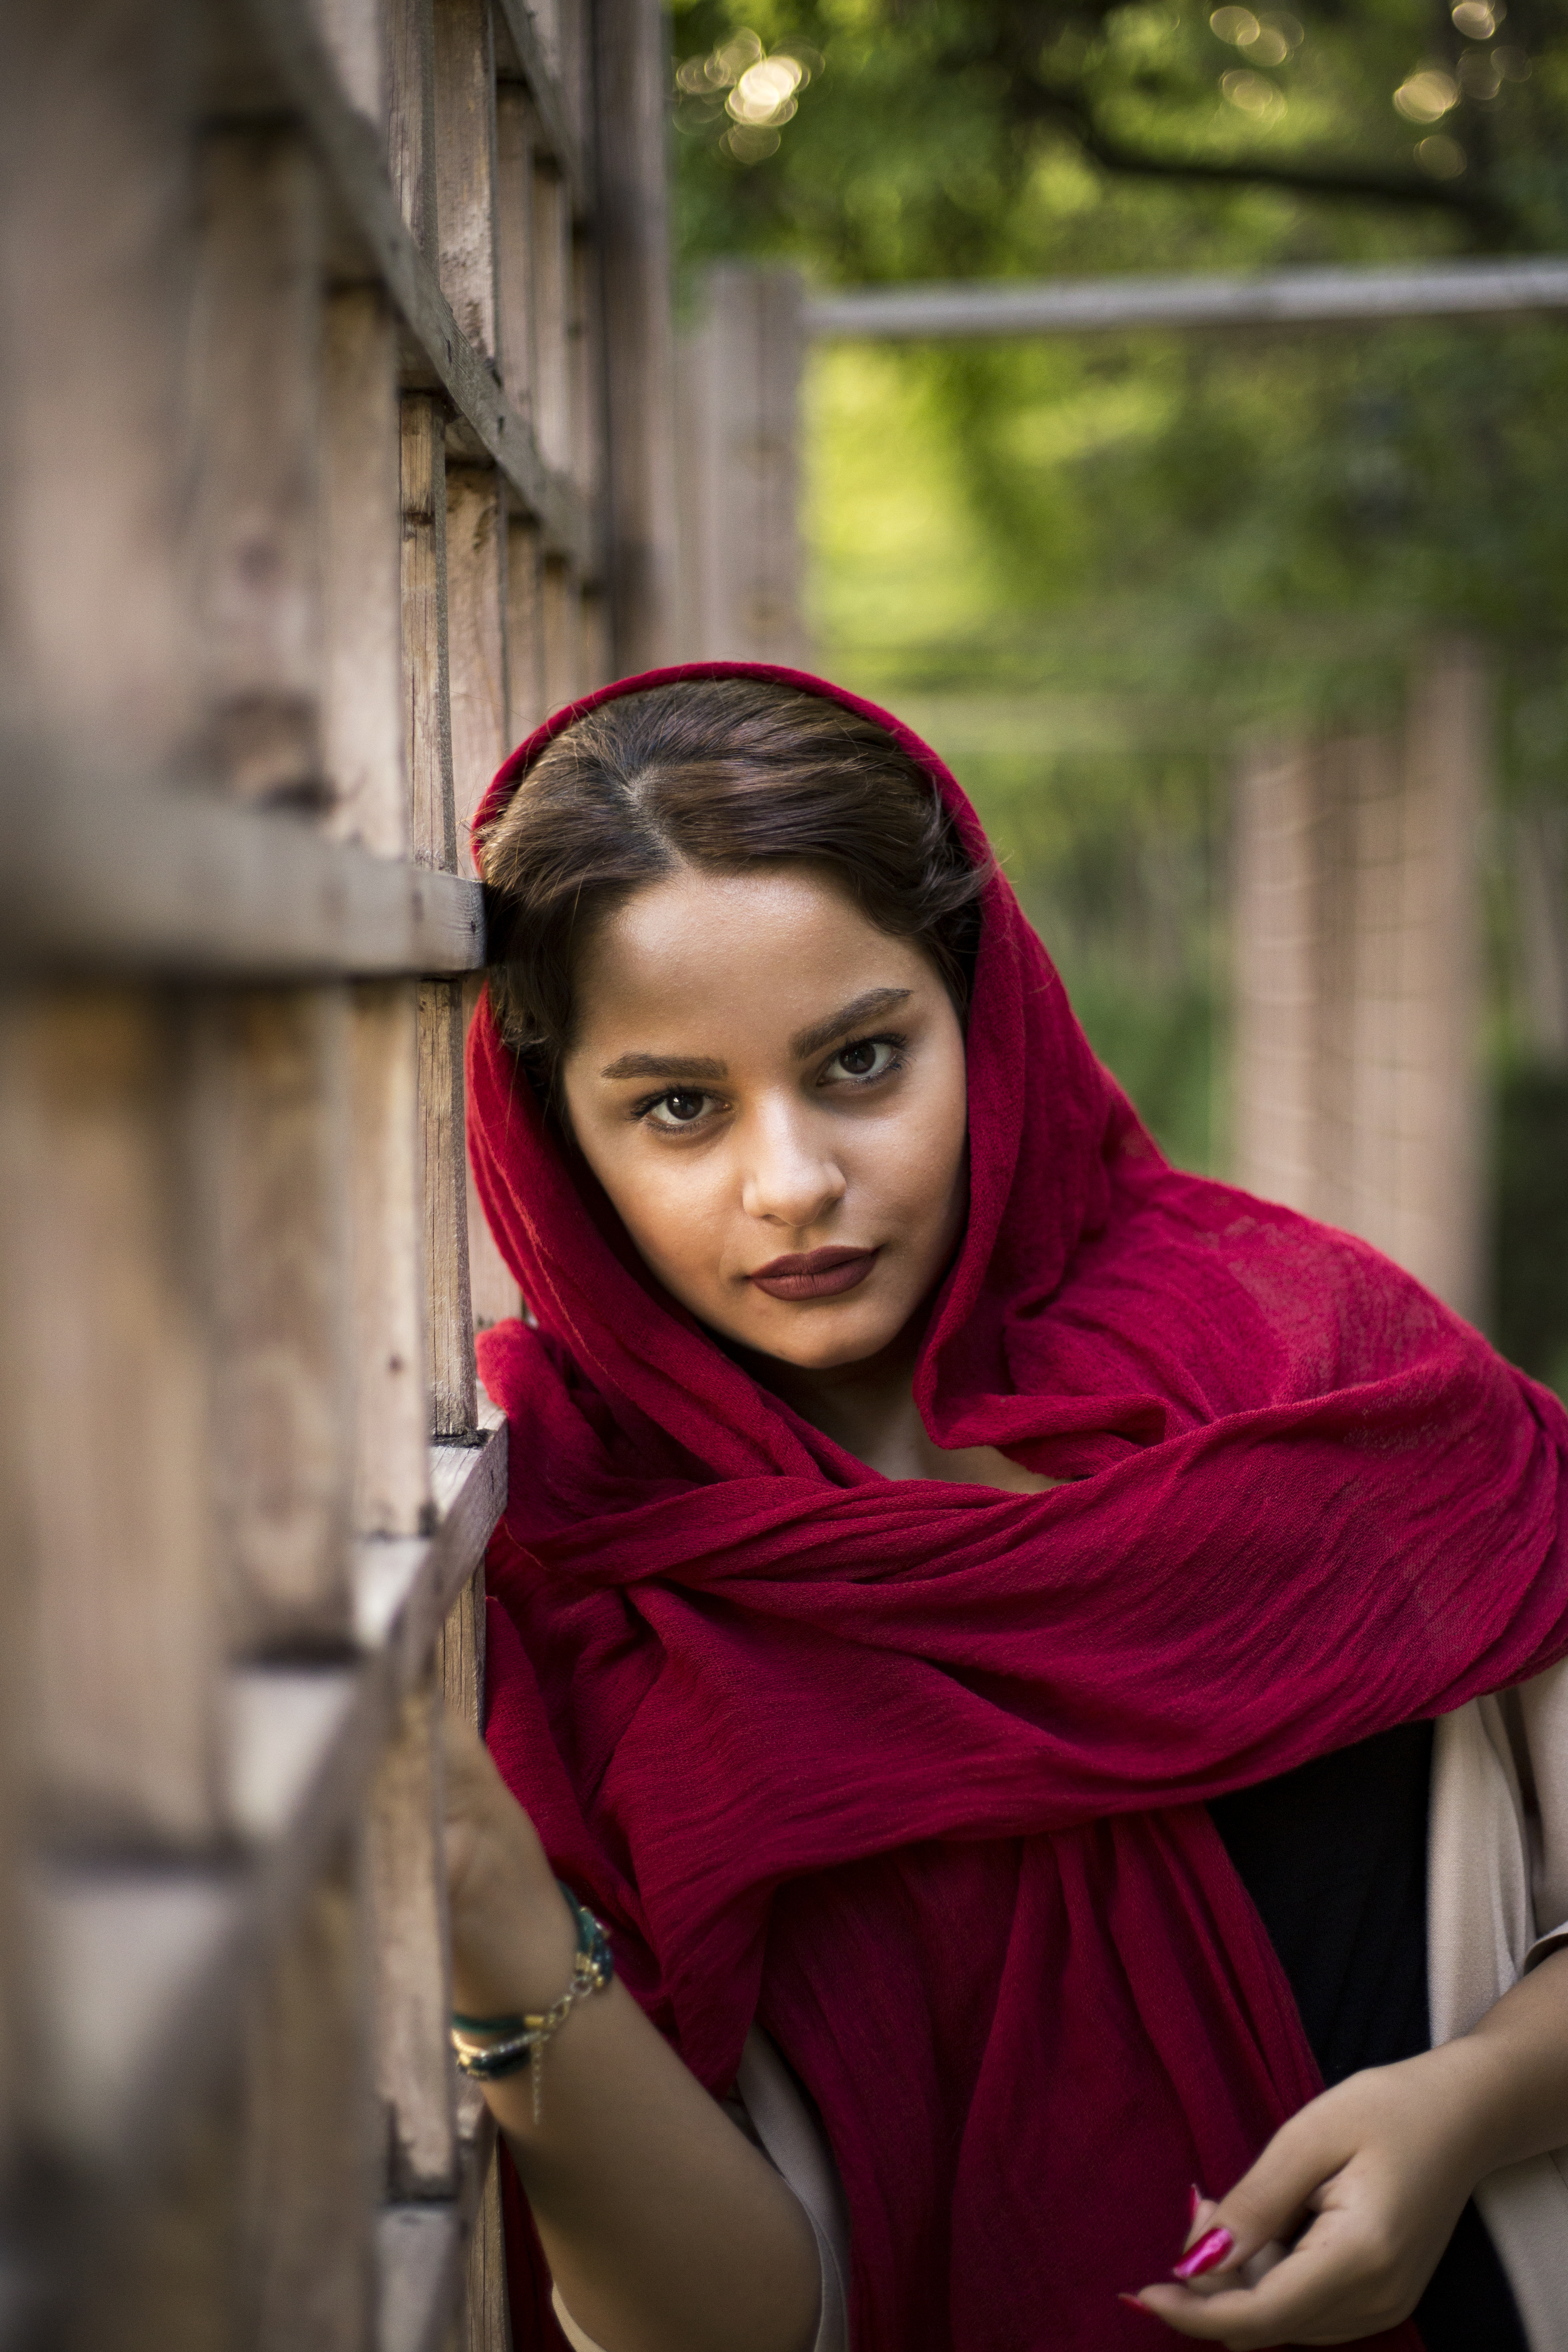 Muslim Girl Wallpaper Free Best 500 Hot Images Hd Download Free Pictures On Unsplash